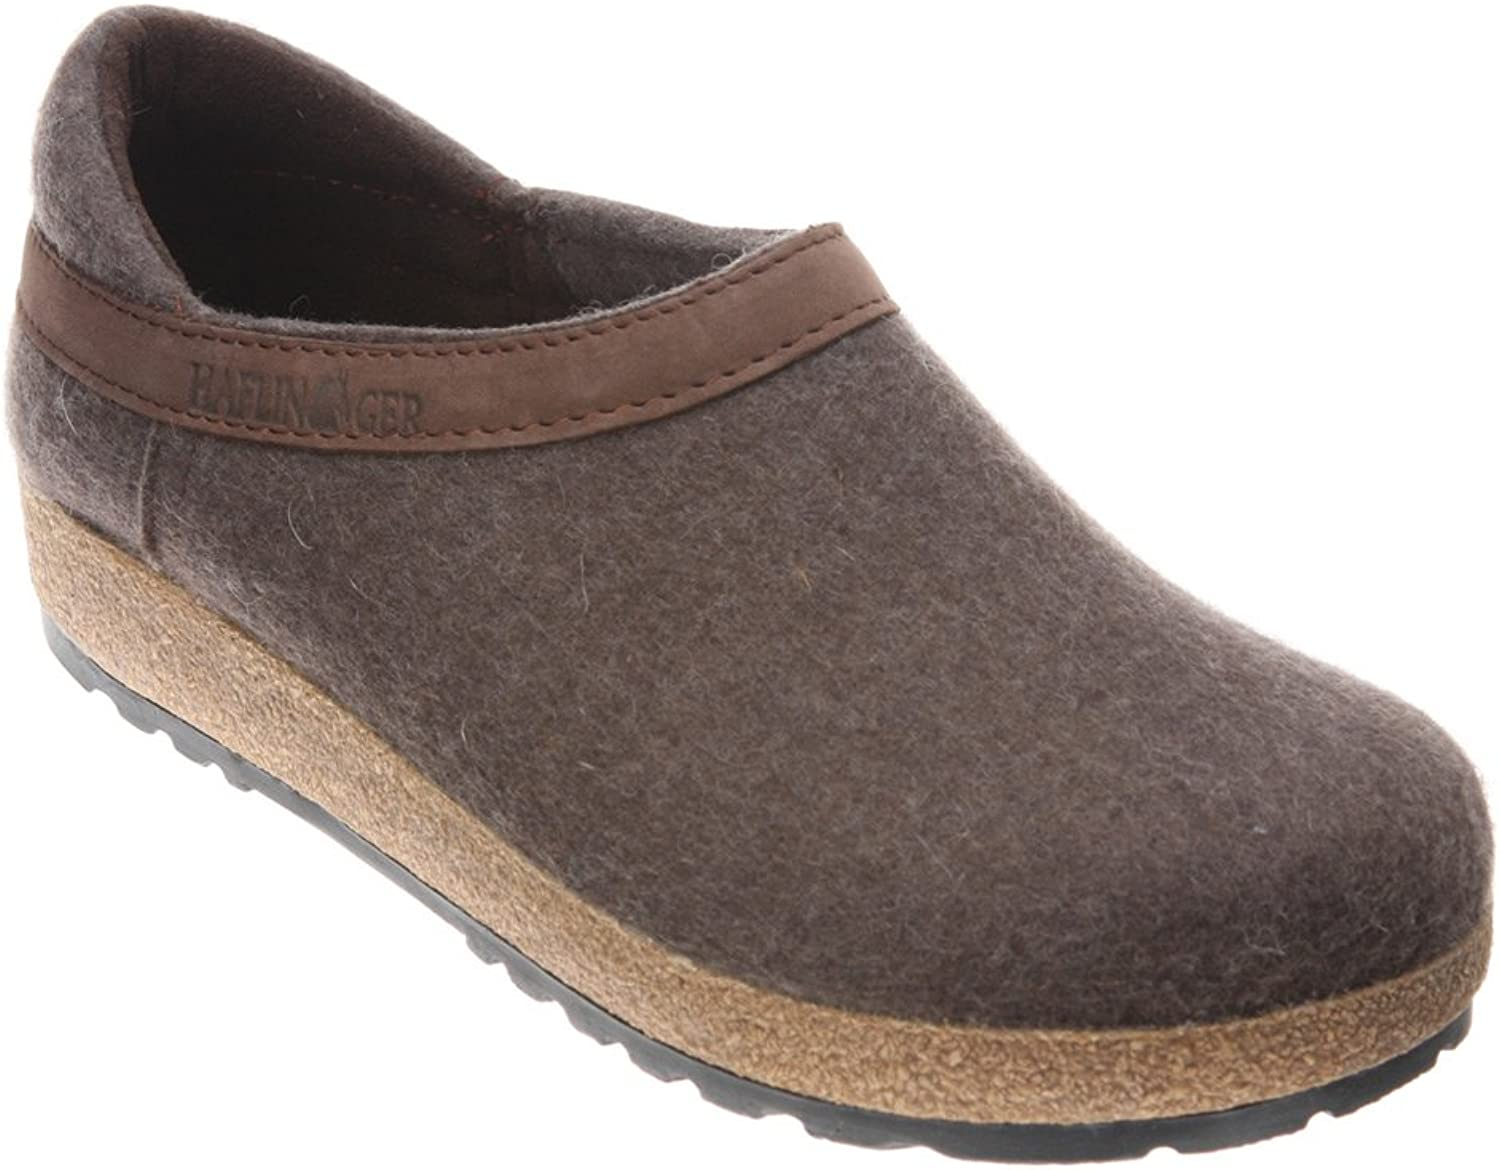 Haflinger Grizzly Clog closed Back